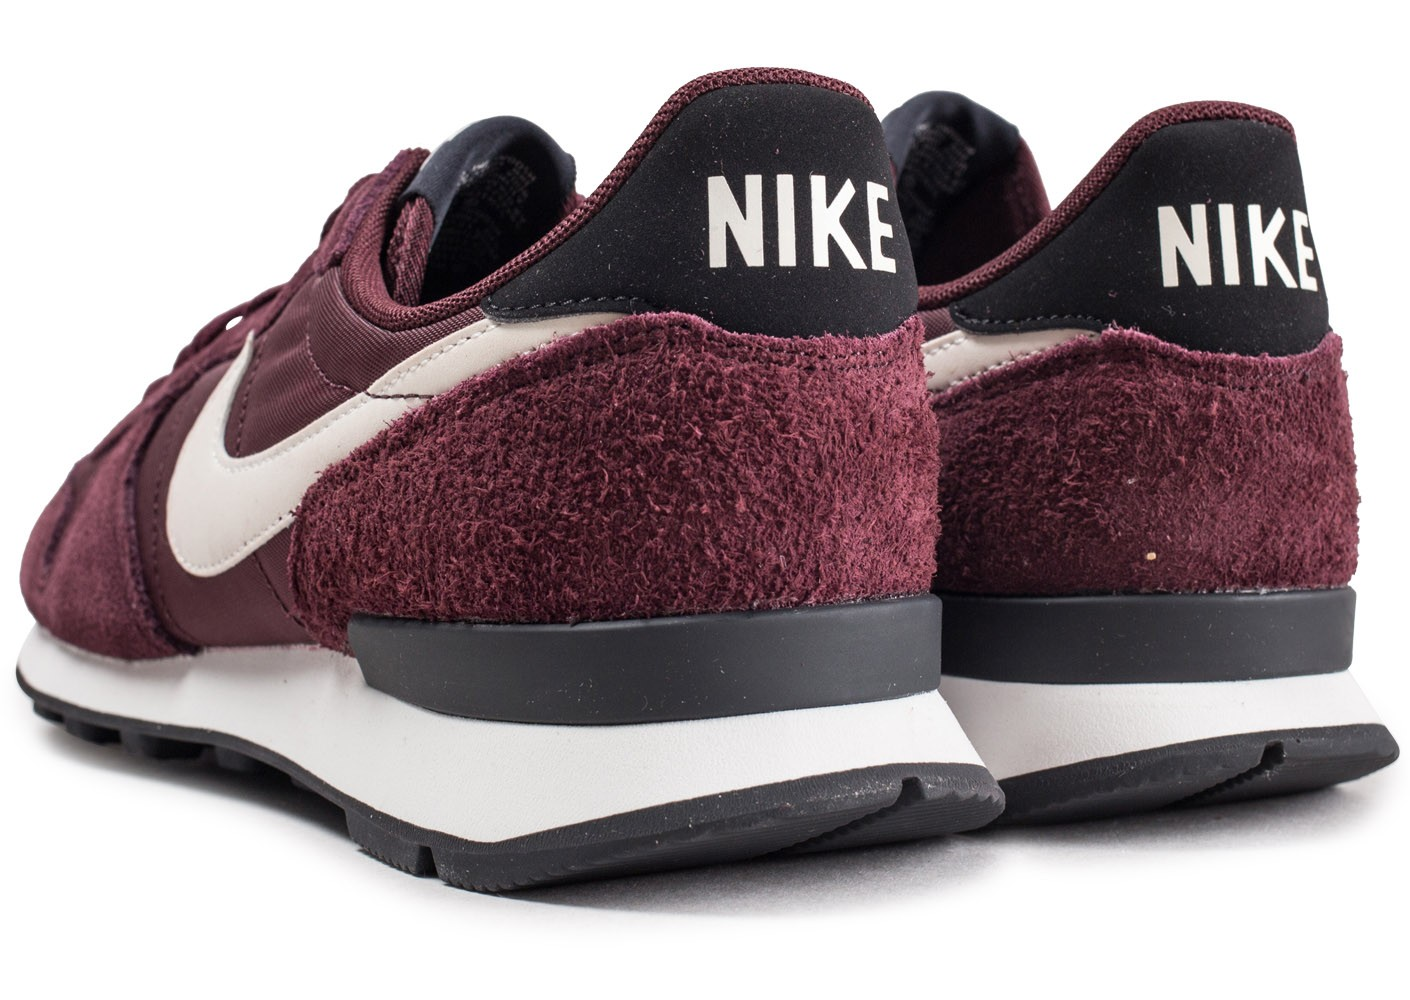 Chaussures Internationalist Baskets Bordeaux Nike Femme VMpzSU